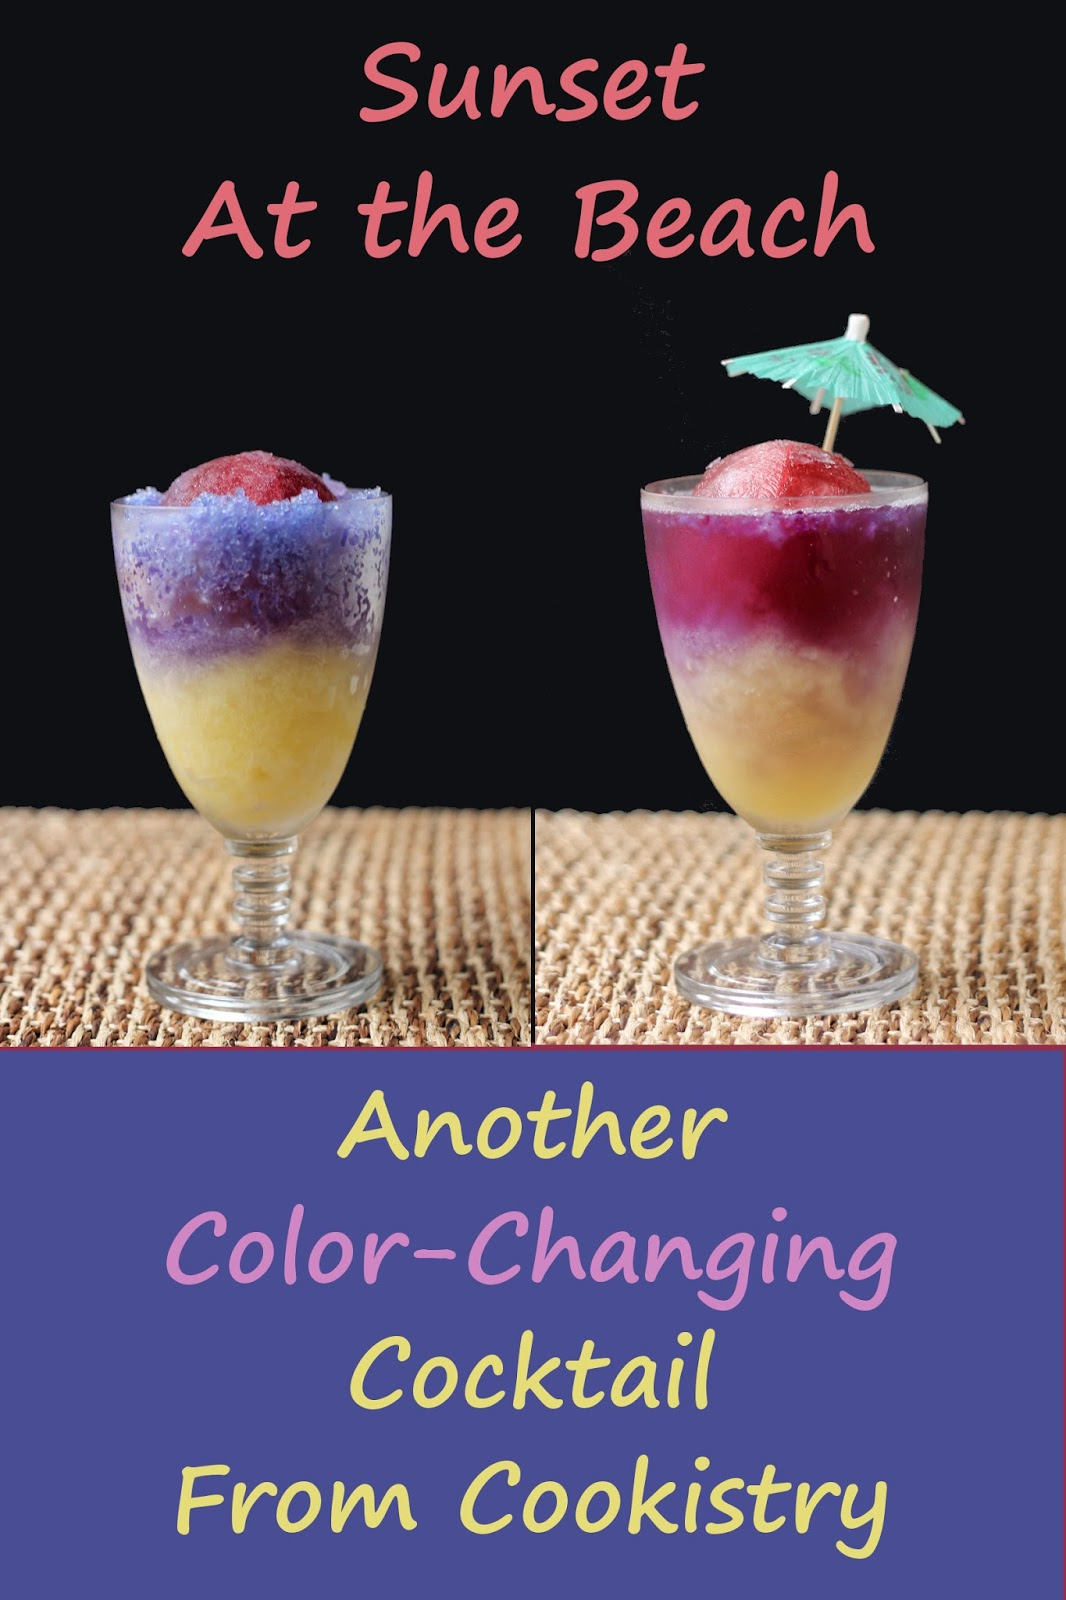 Just like a sunset on the water, you can watch the sun and sky change color in this cocktail